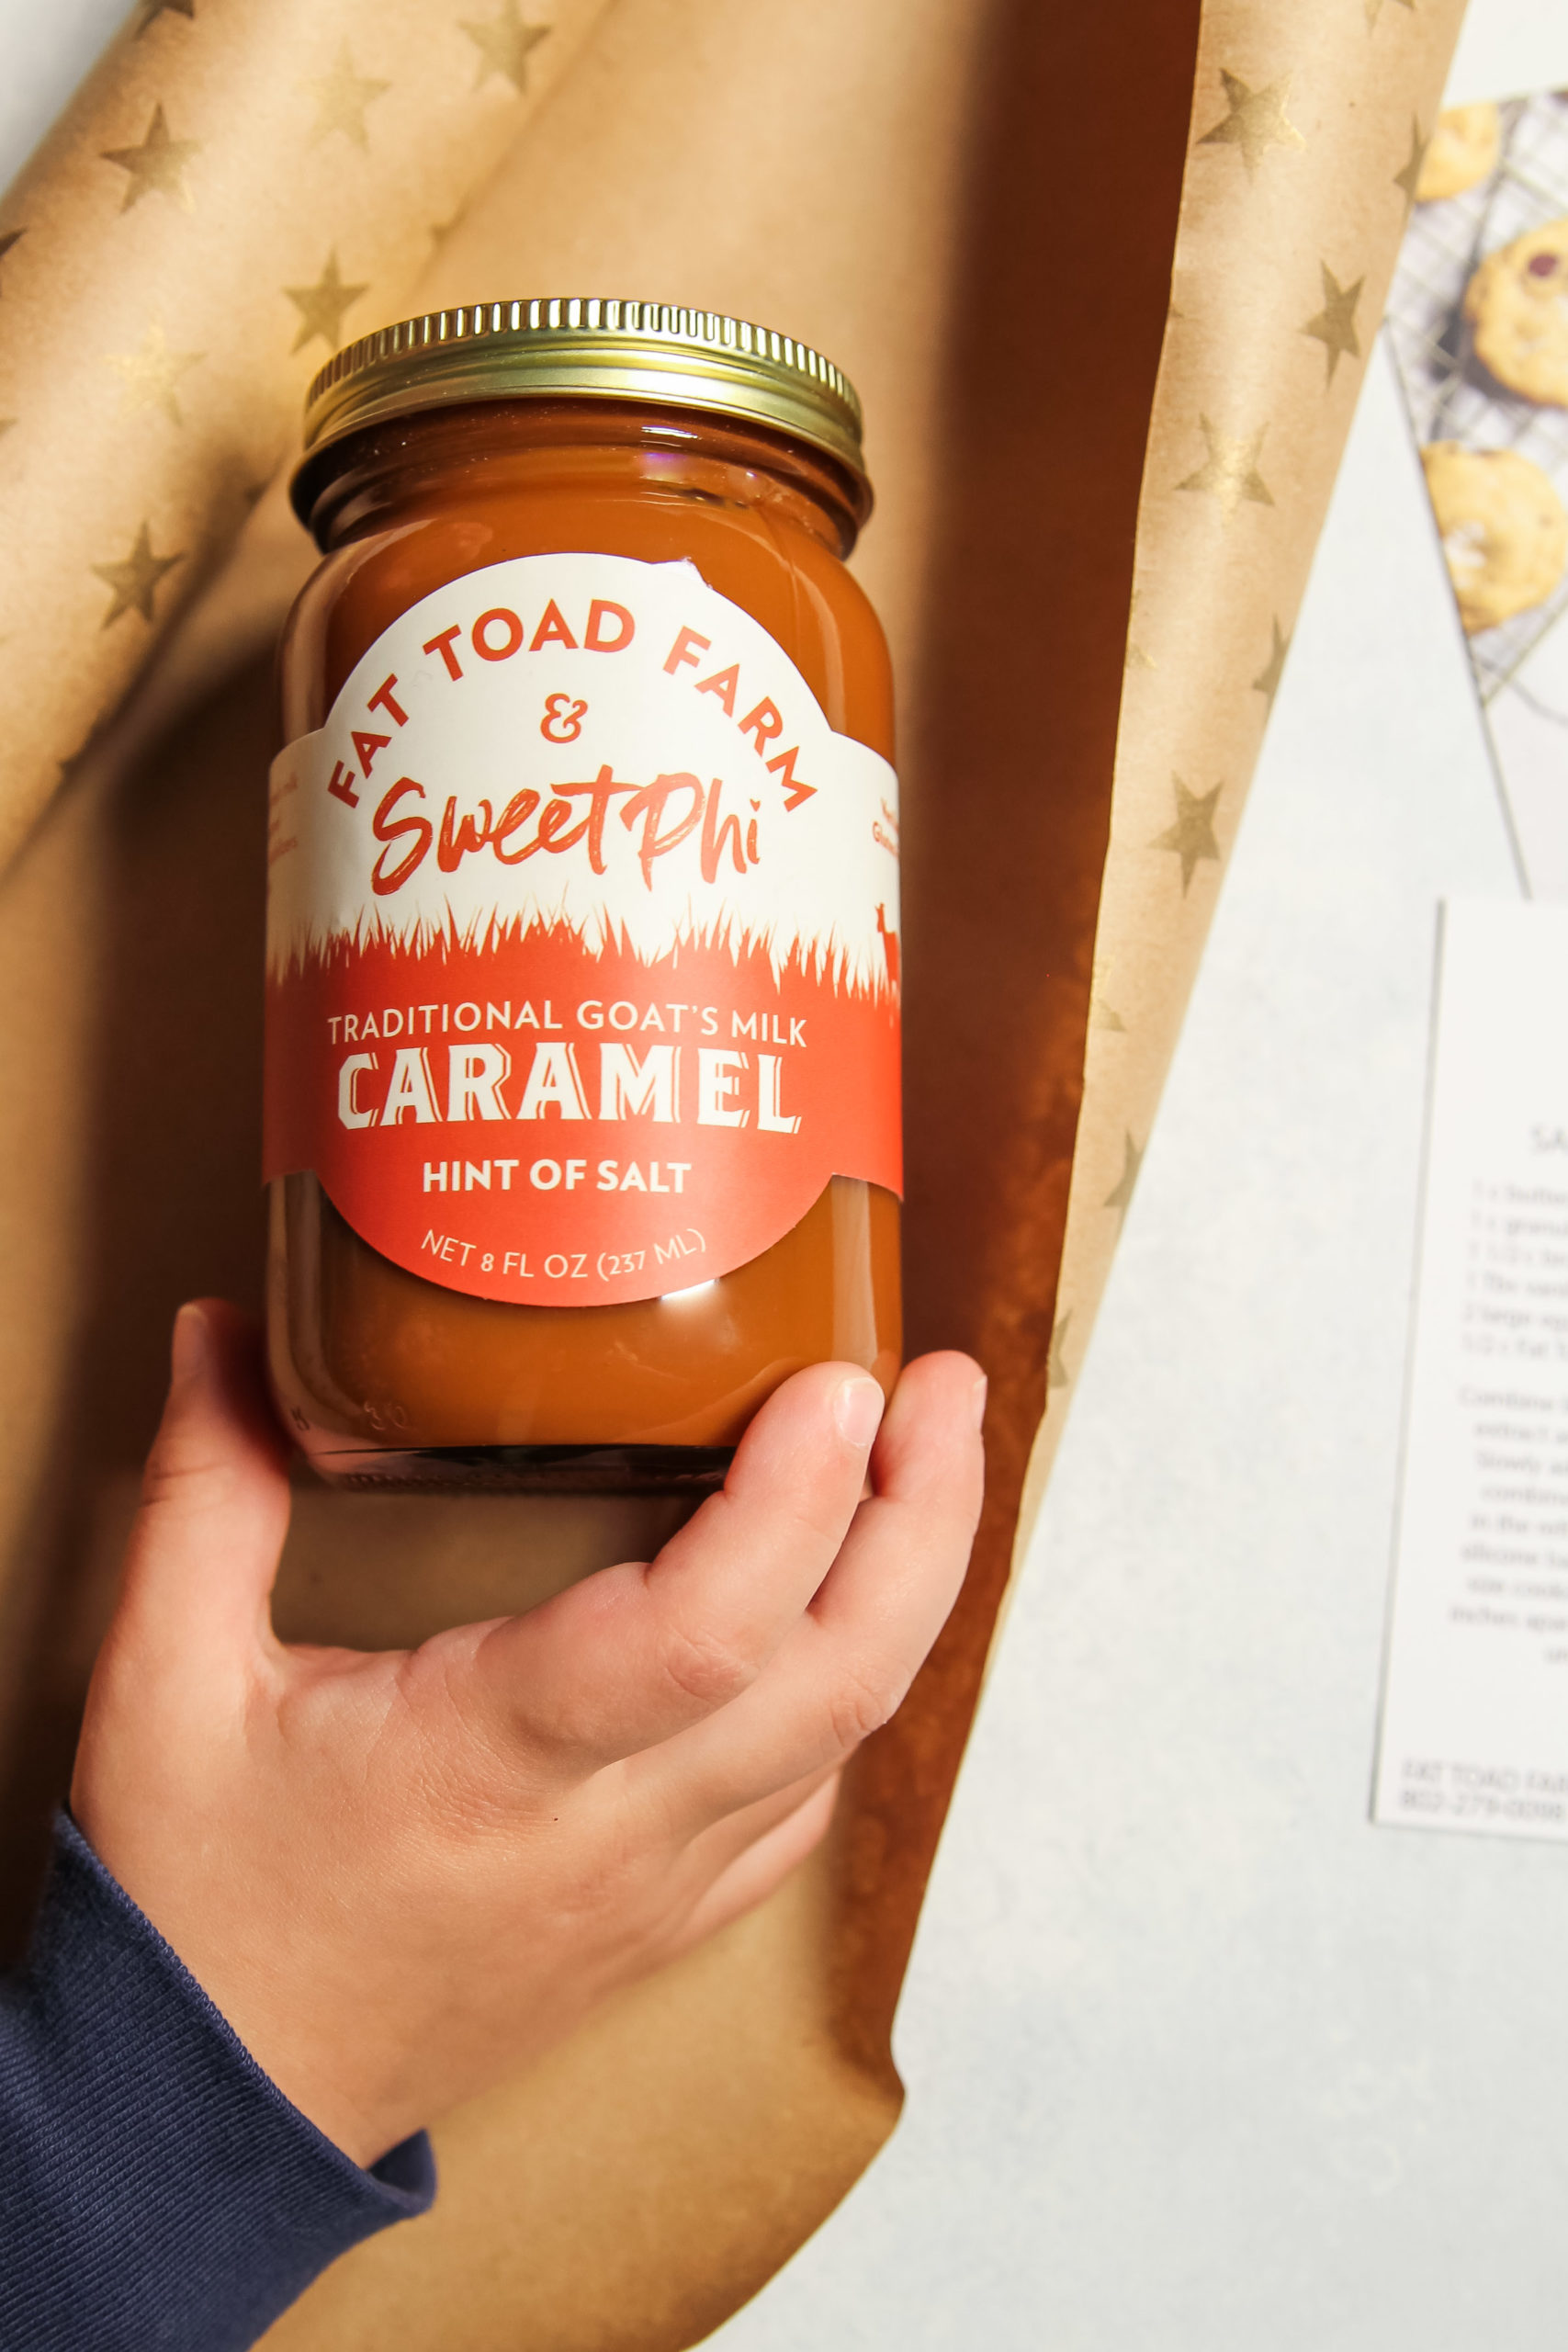 The best collaboration with Fat Toad Farm Caramel and SweetPhi